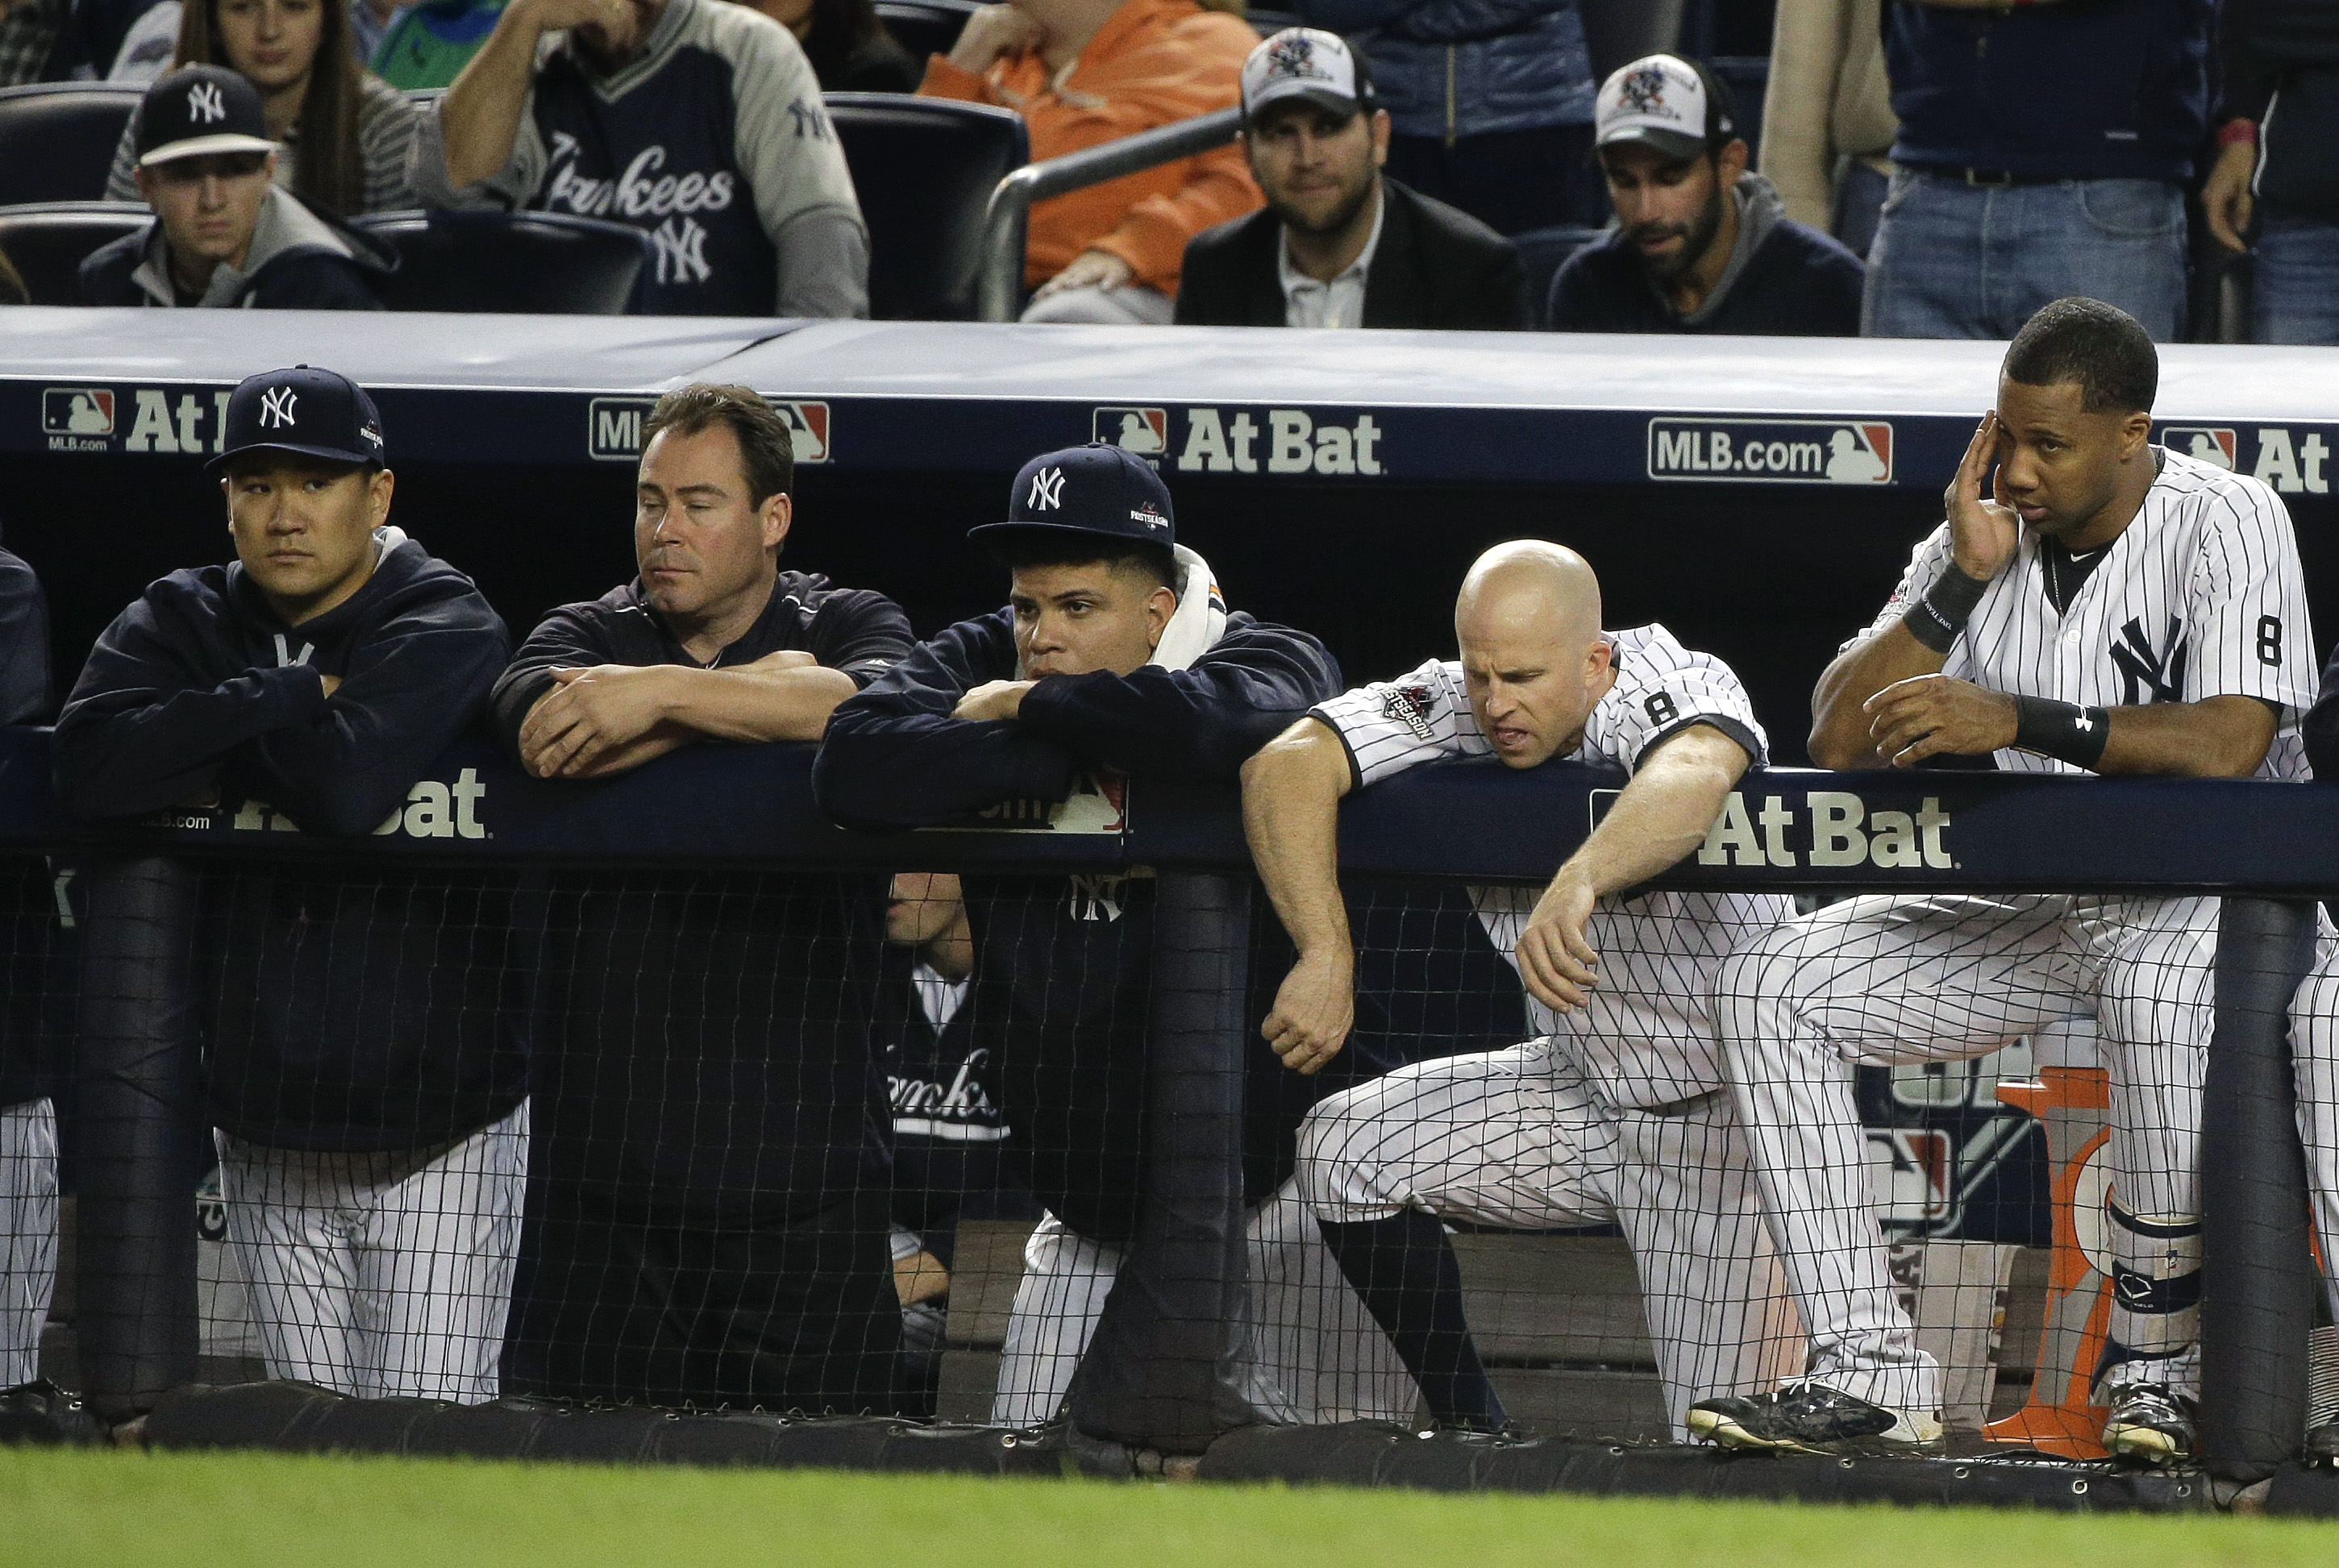 New York Yankees pitcher Masahiro Tanaka, far left, Dellin Betances, second from left, Brett Gardner, second from right, and Chris Young, right, watch from the dugout against the Houston Astros during the ninth inning of the American League wild card base